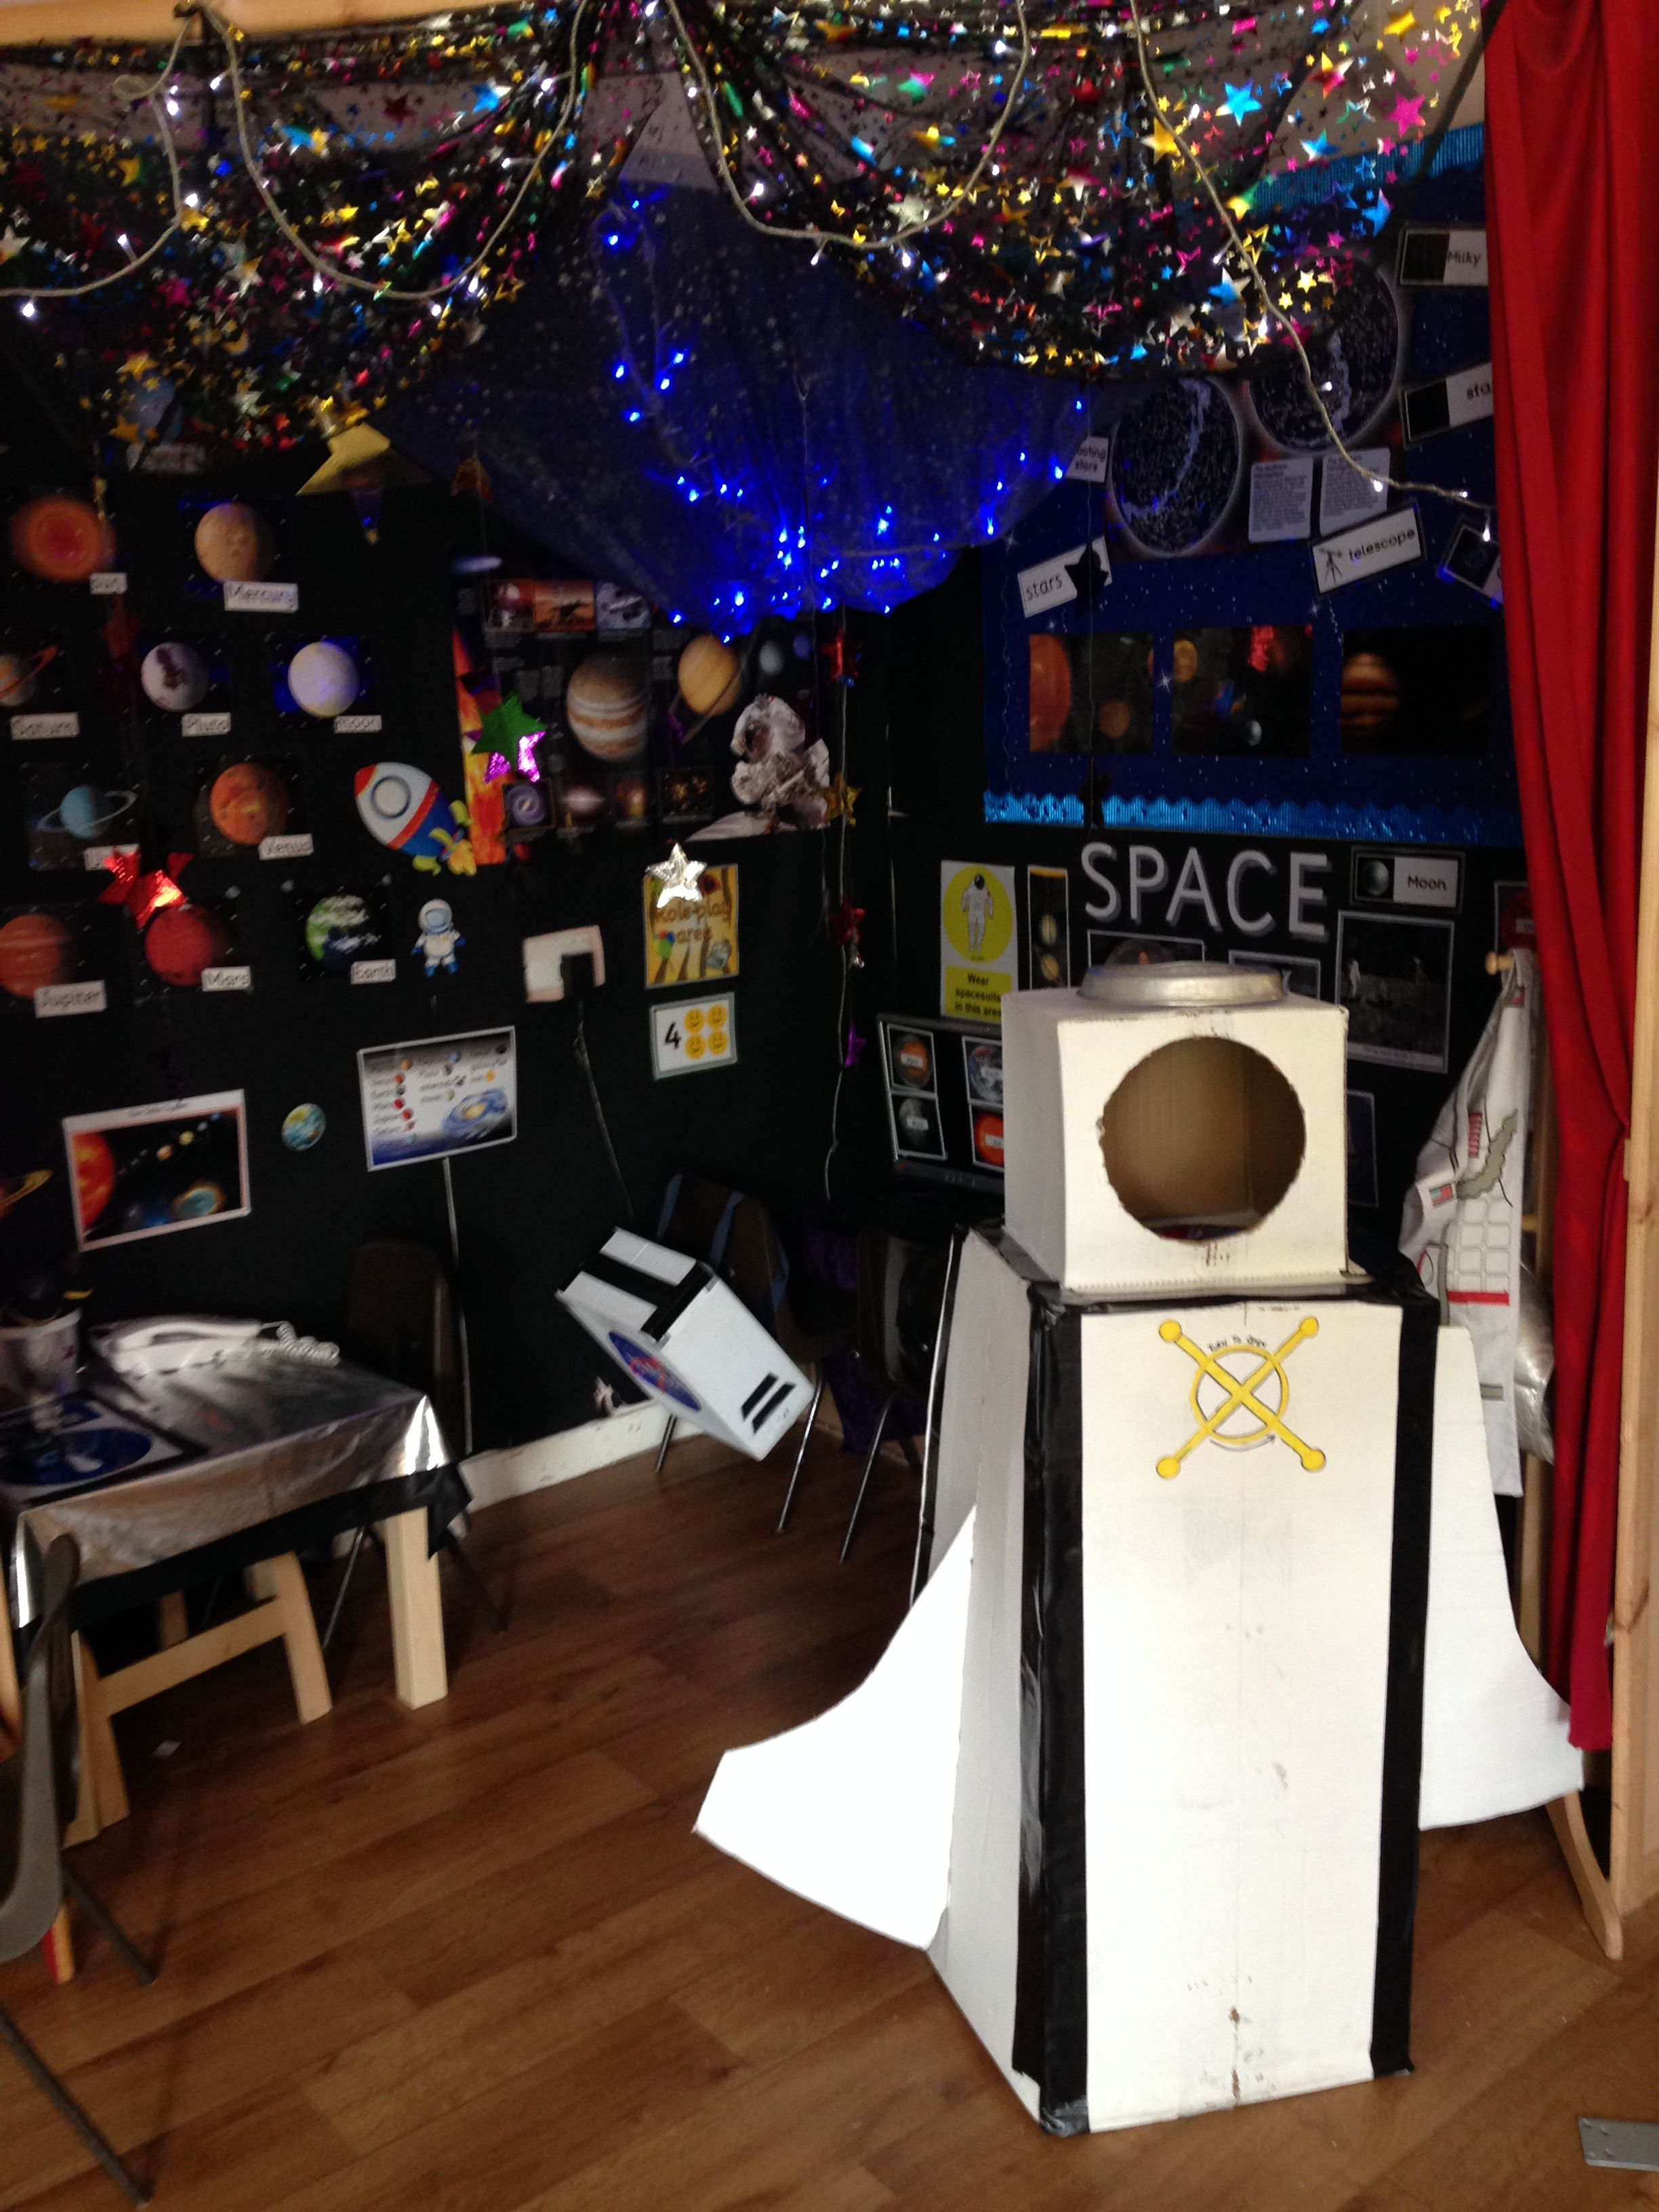 Space Station Rocket Role Play Area In Reception Space